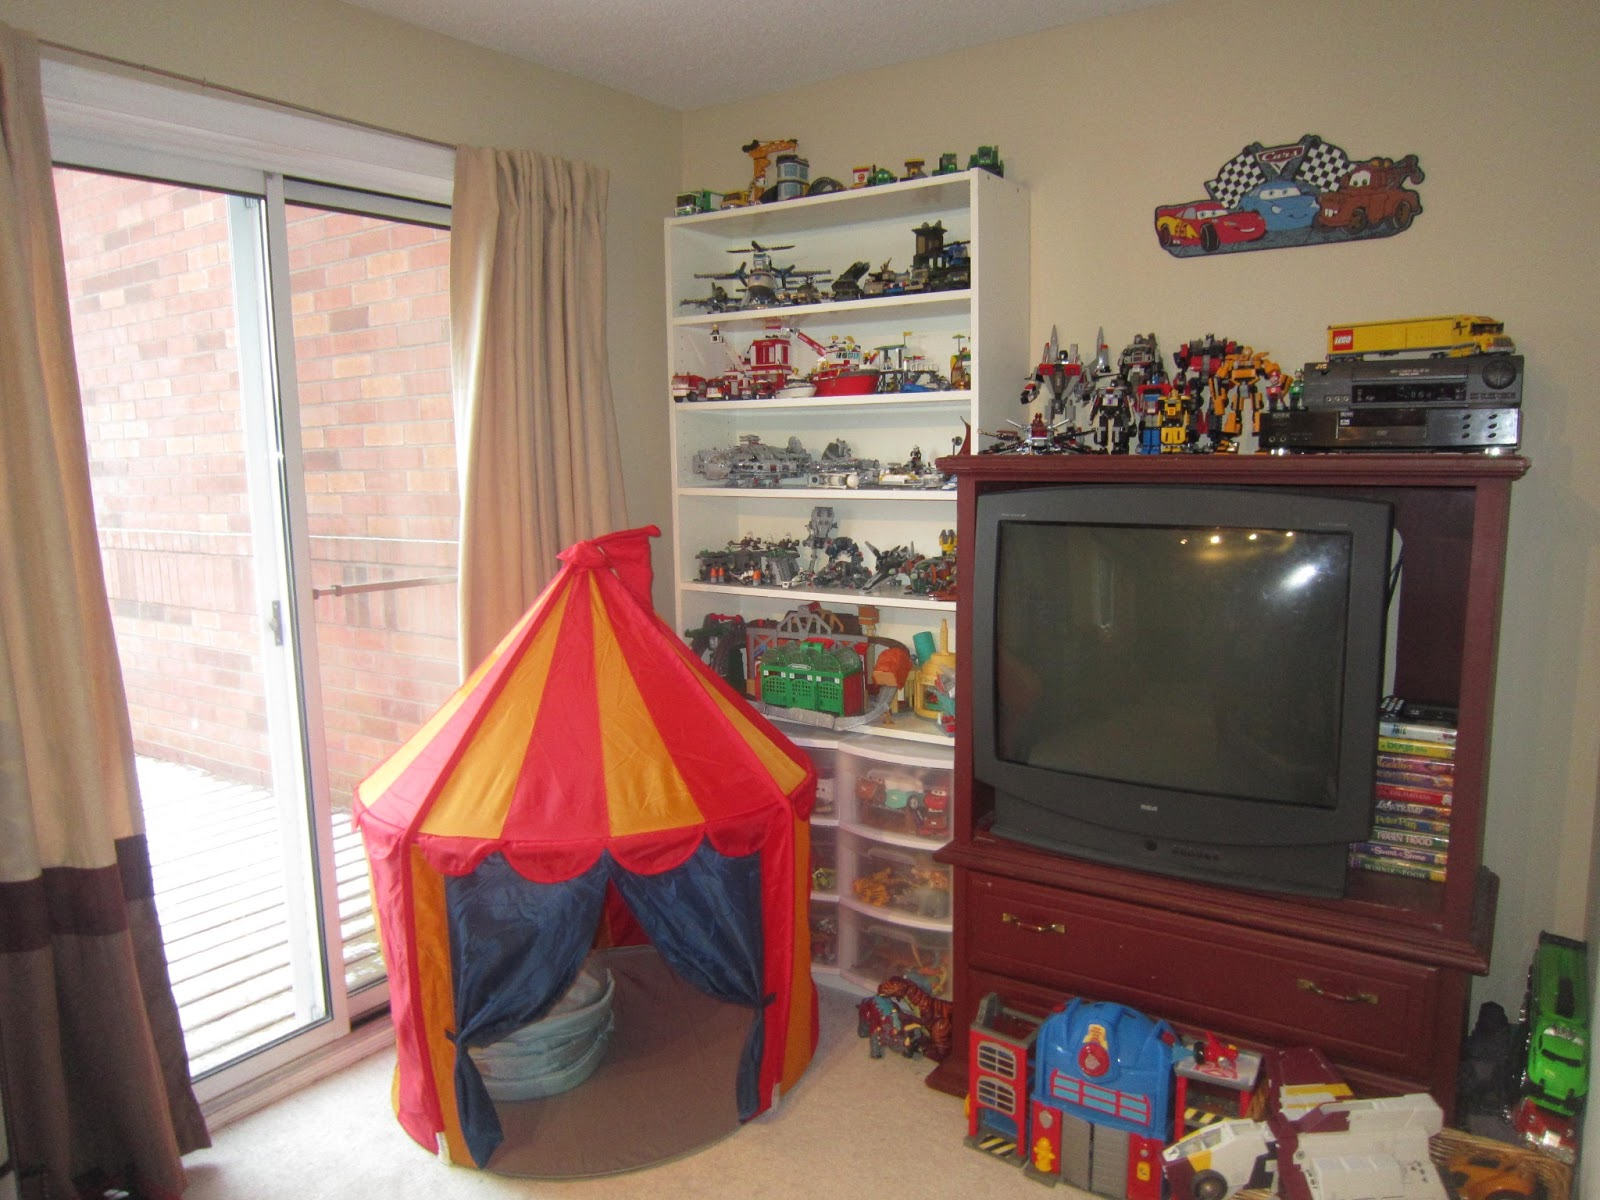 Home decor, playroom organization, toy organization, brown drapes